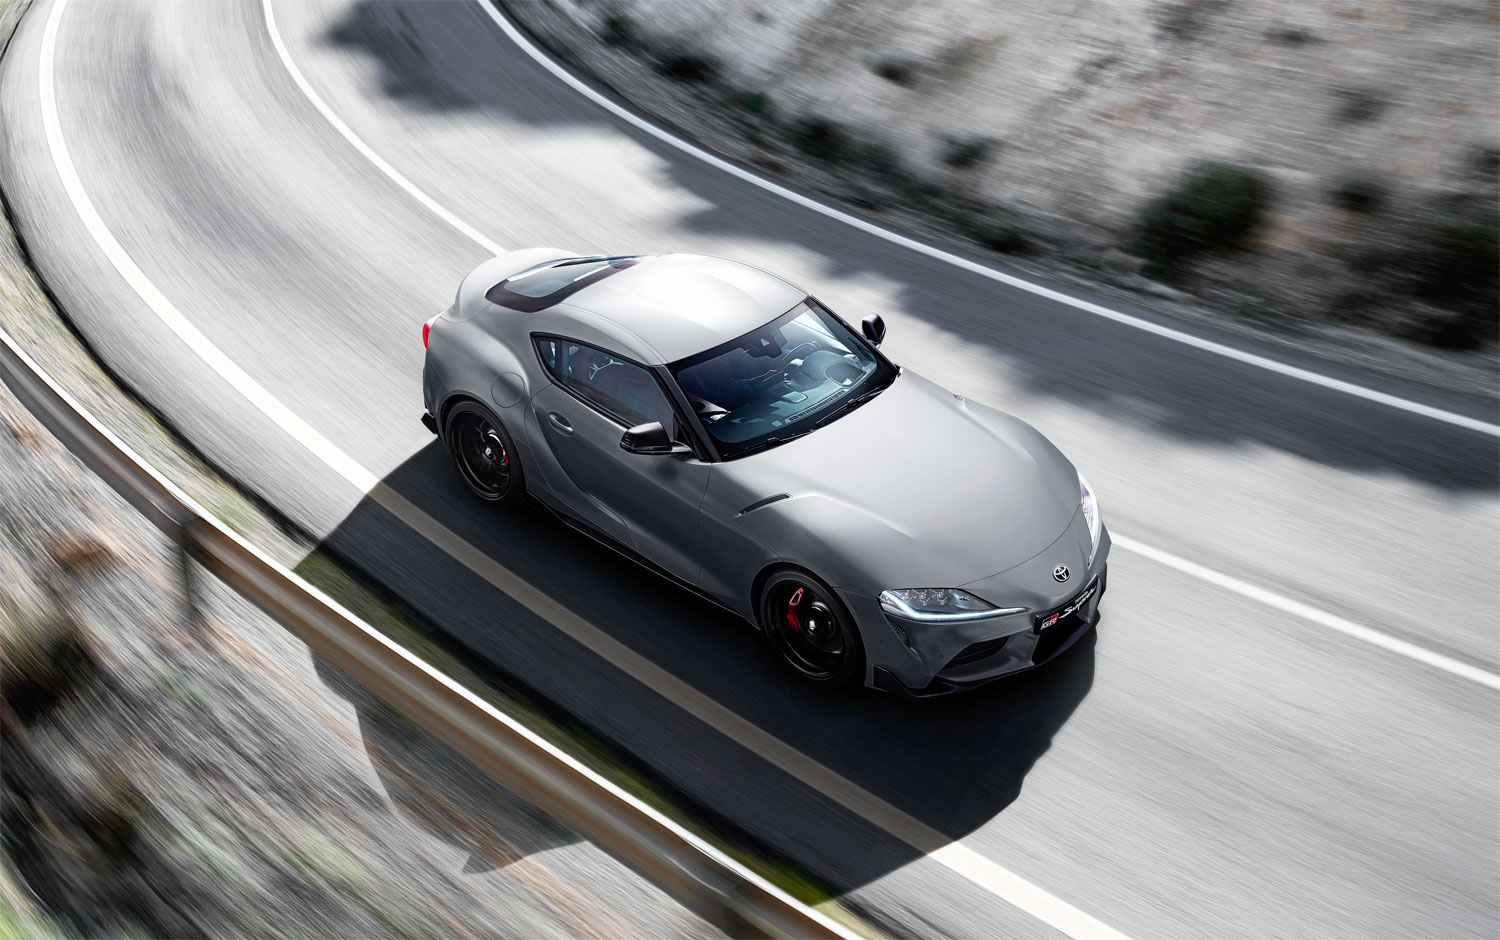 First Appearance of All-New Toyota GR Supra Takes Place at NAIAS 14